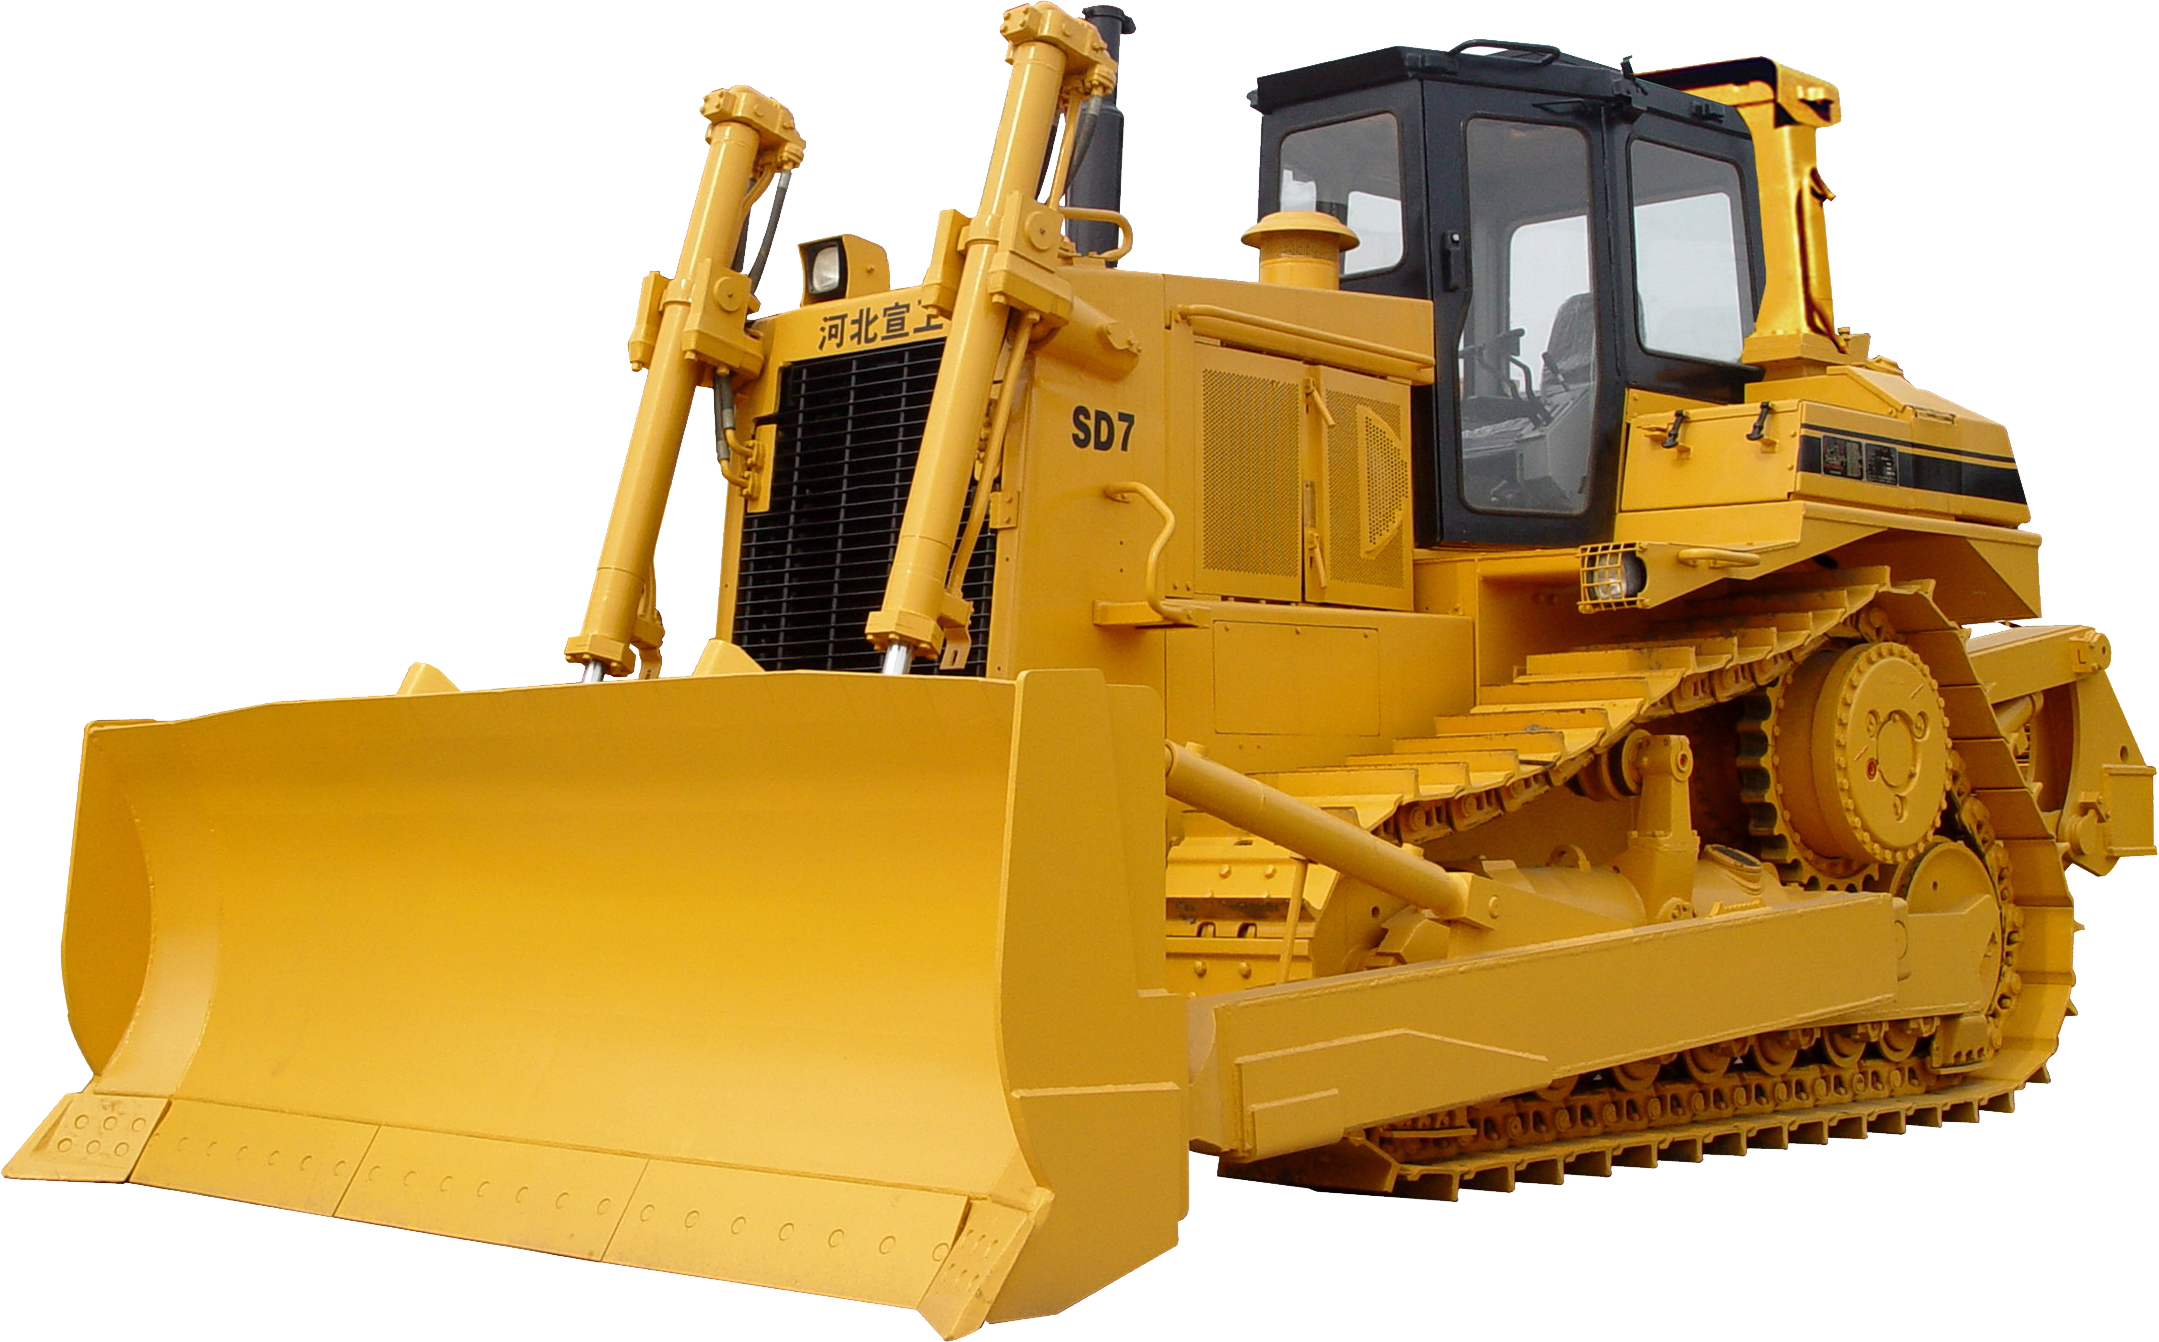 Cat bulldozer clipart black and white Bulldozer SD7 PNG Image - PurePNG | Free transparent CC0 PNG Image ... black and white